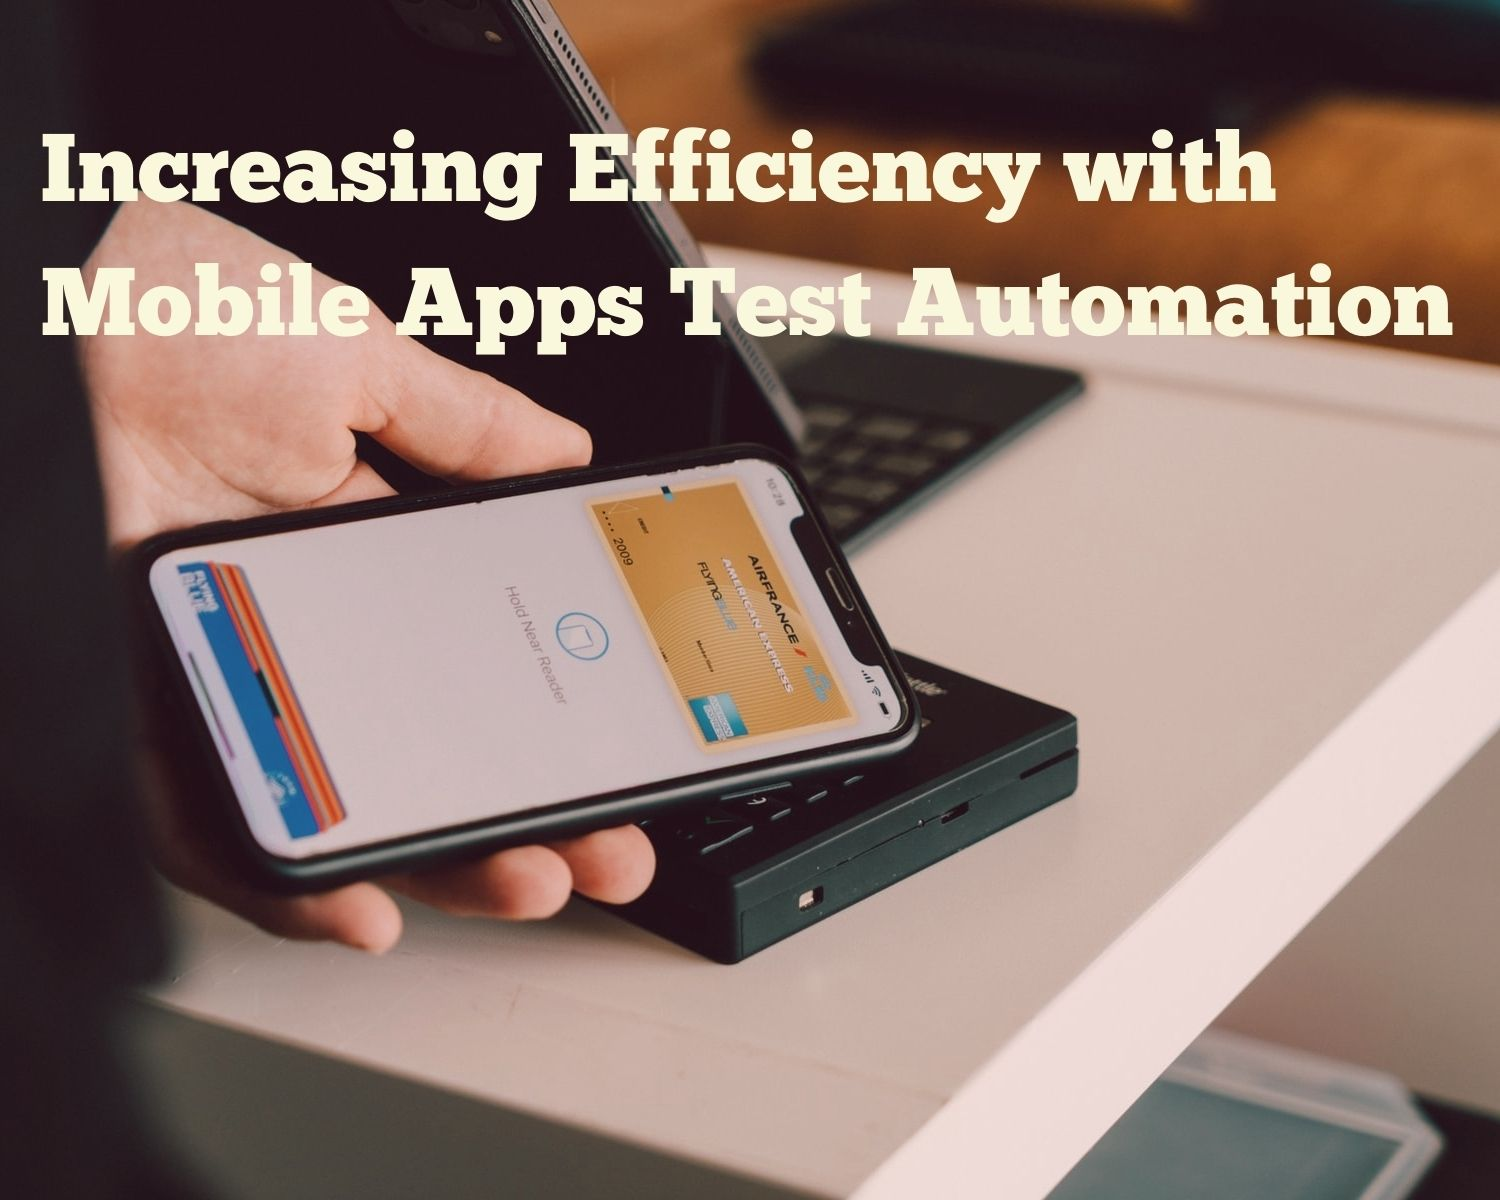 Increasing Efficiency with Mobile Apps Test Automation